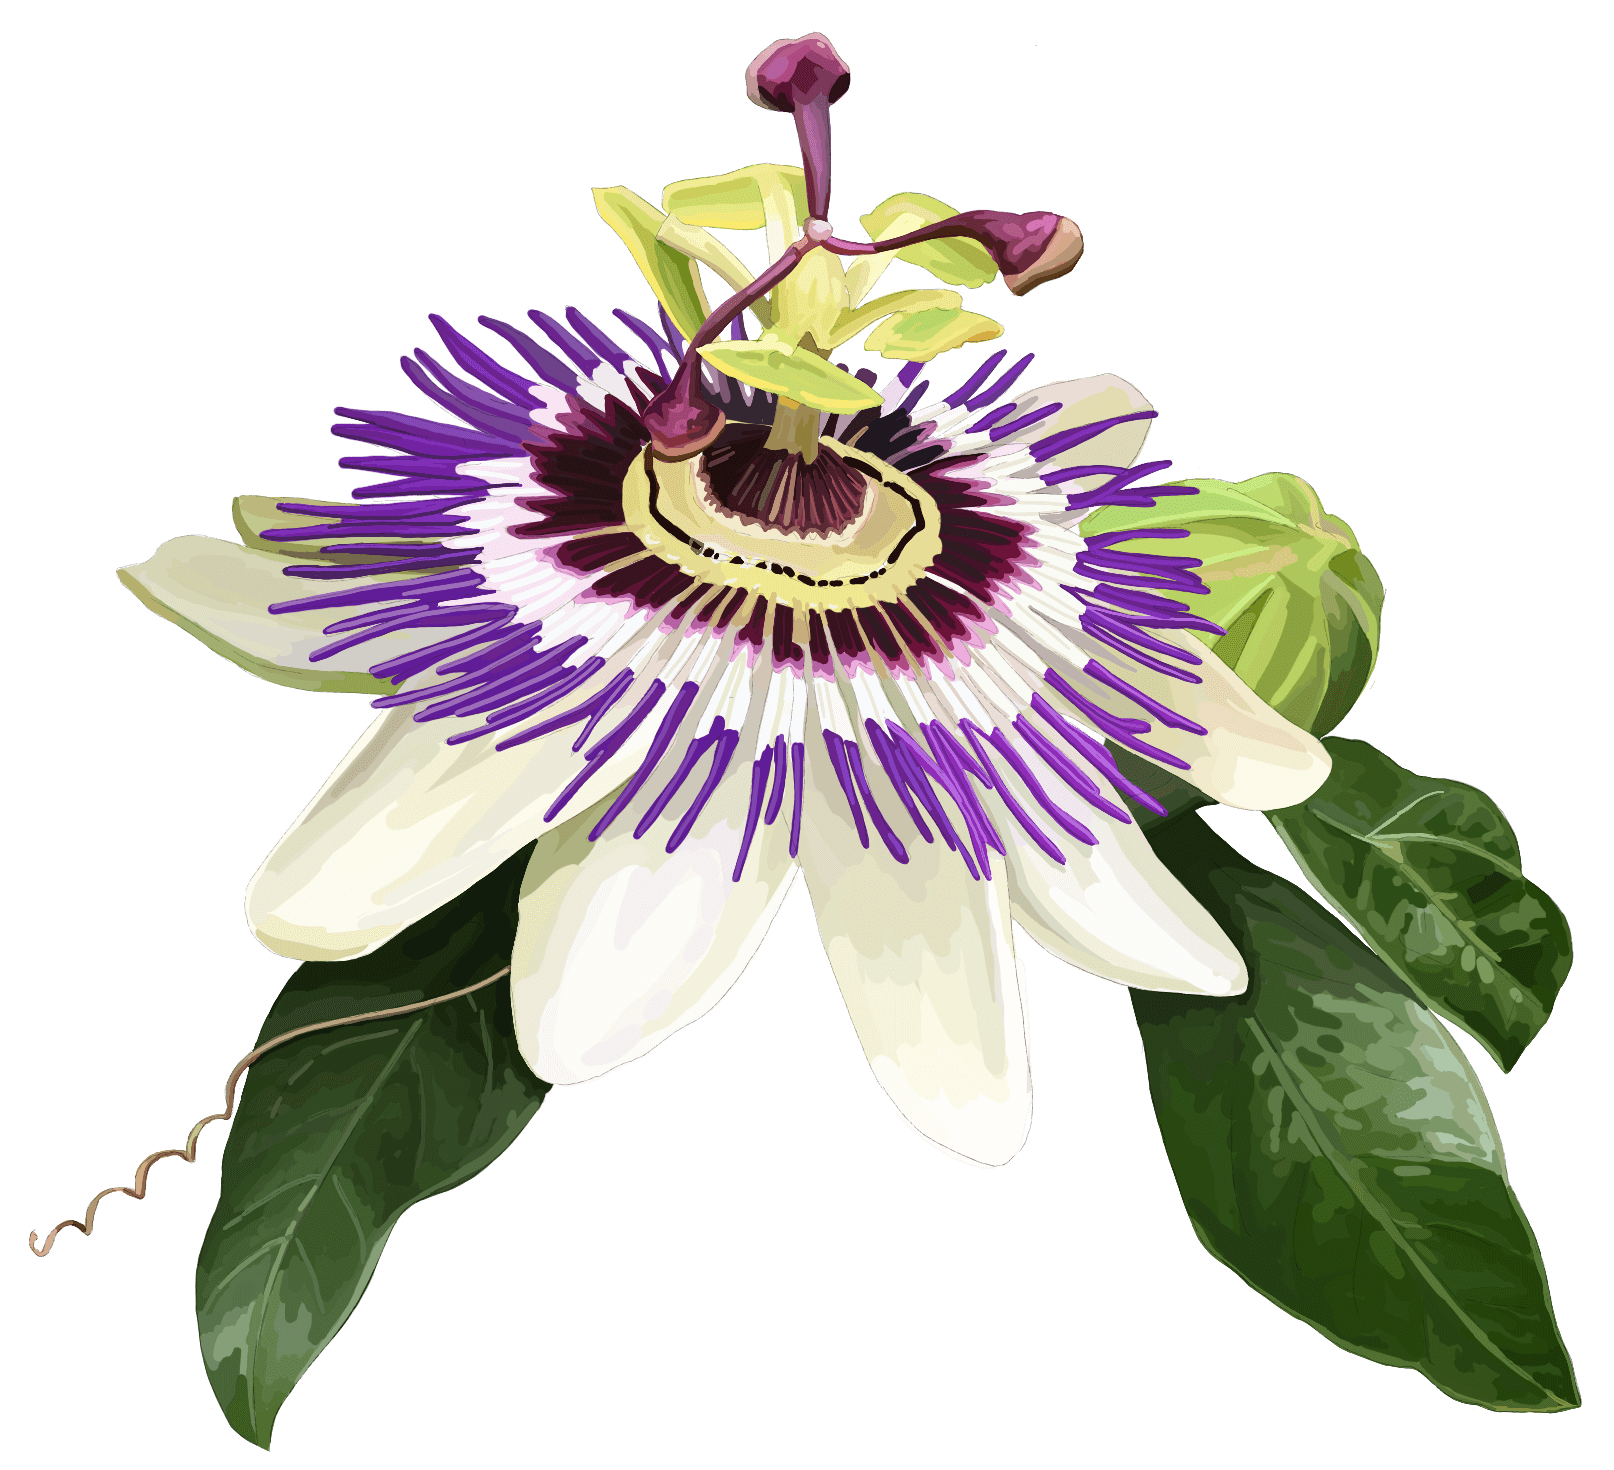 Passion flower. Passiflora incarnata